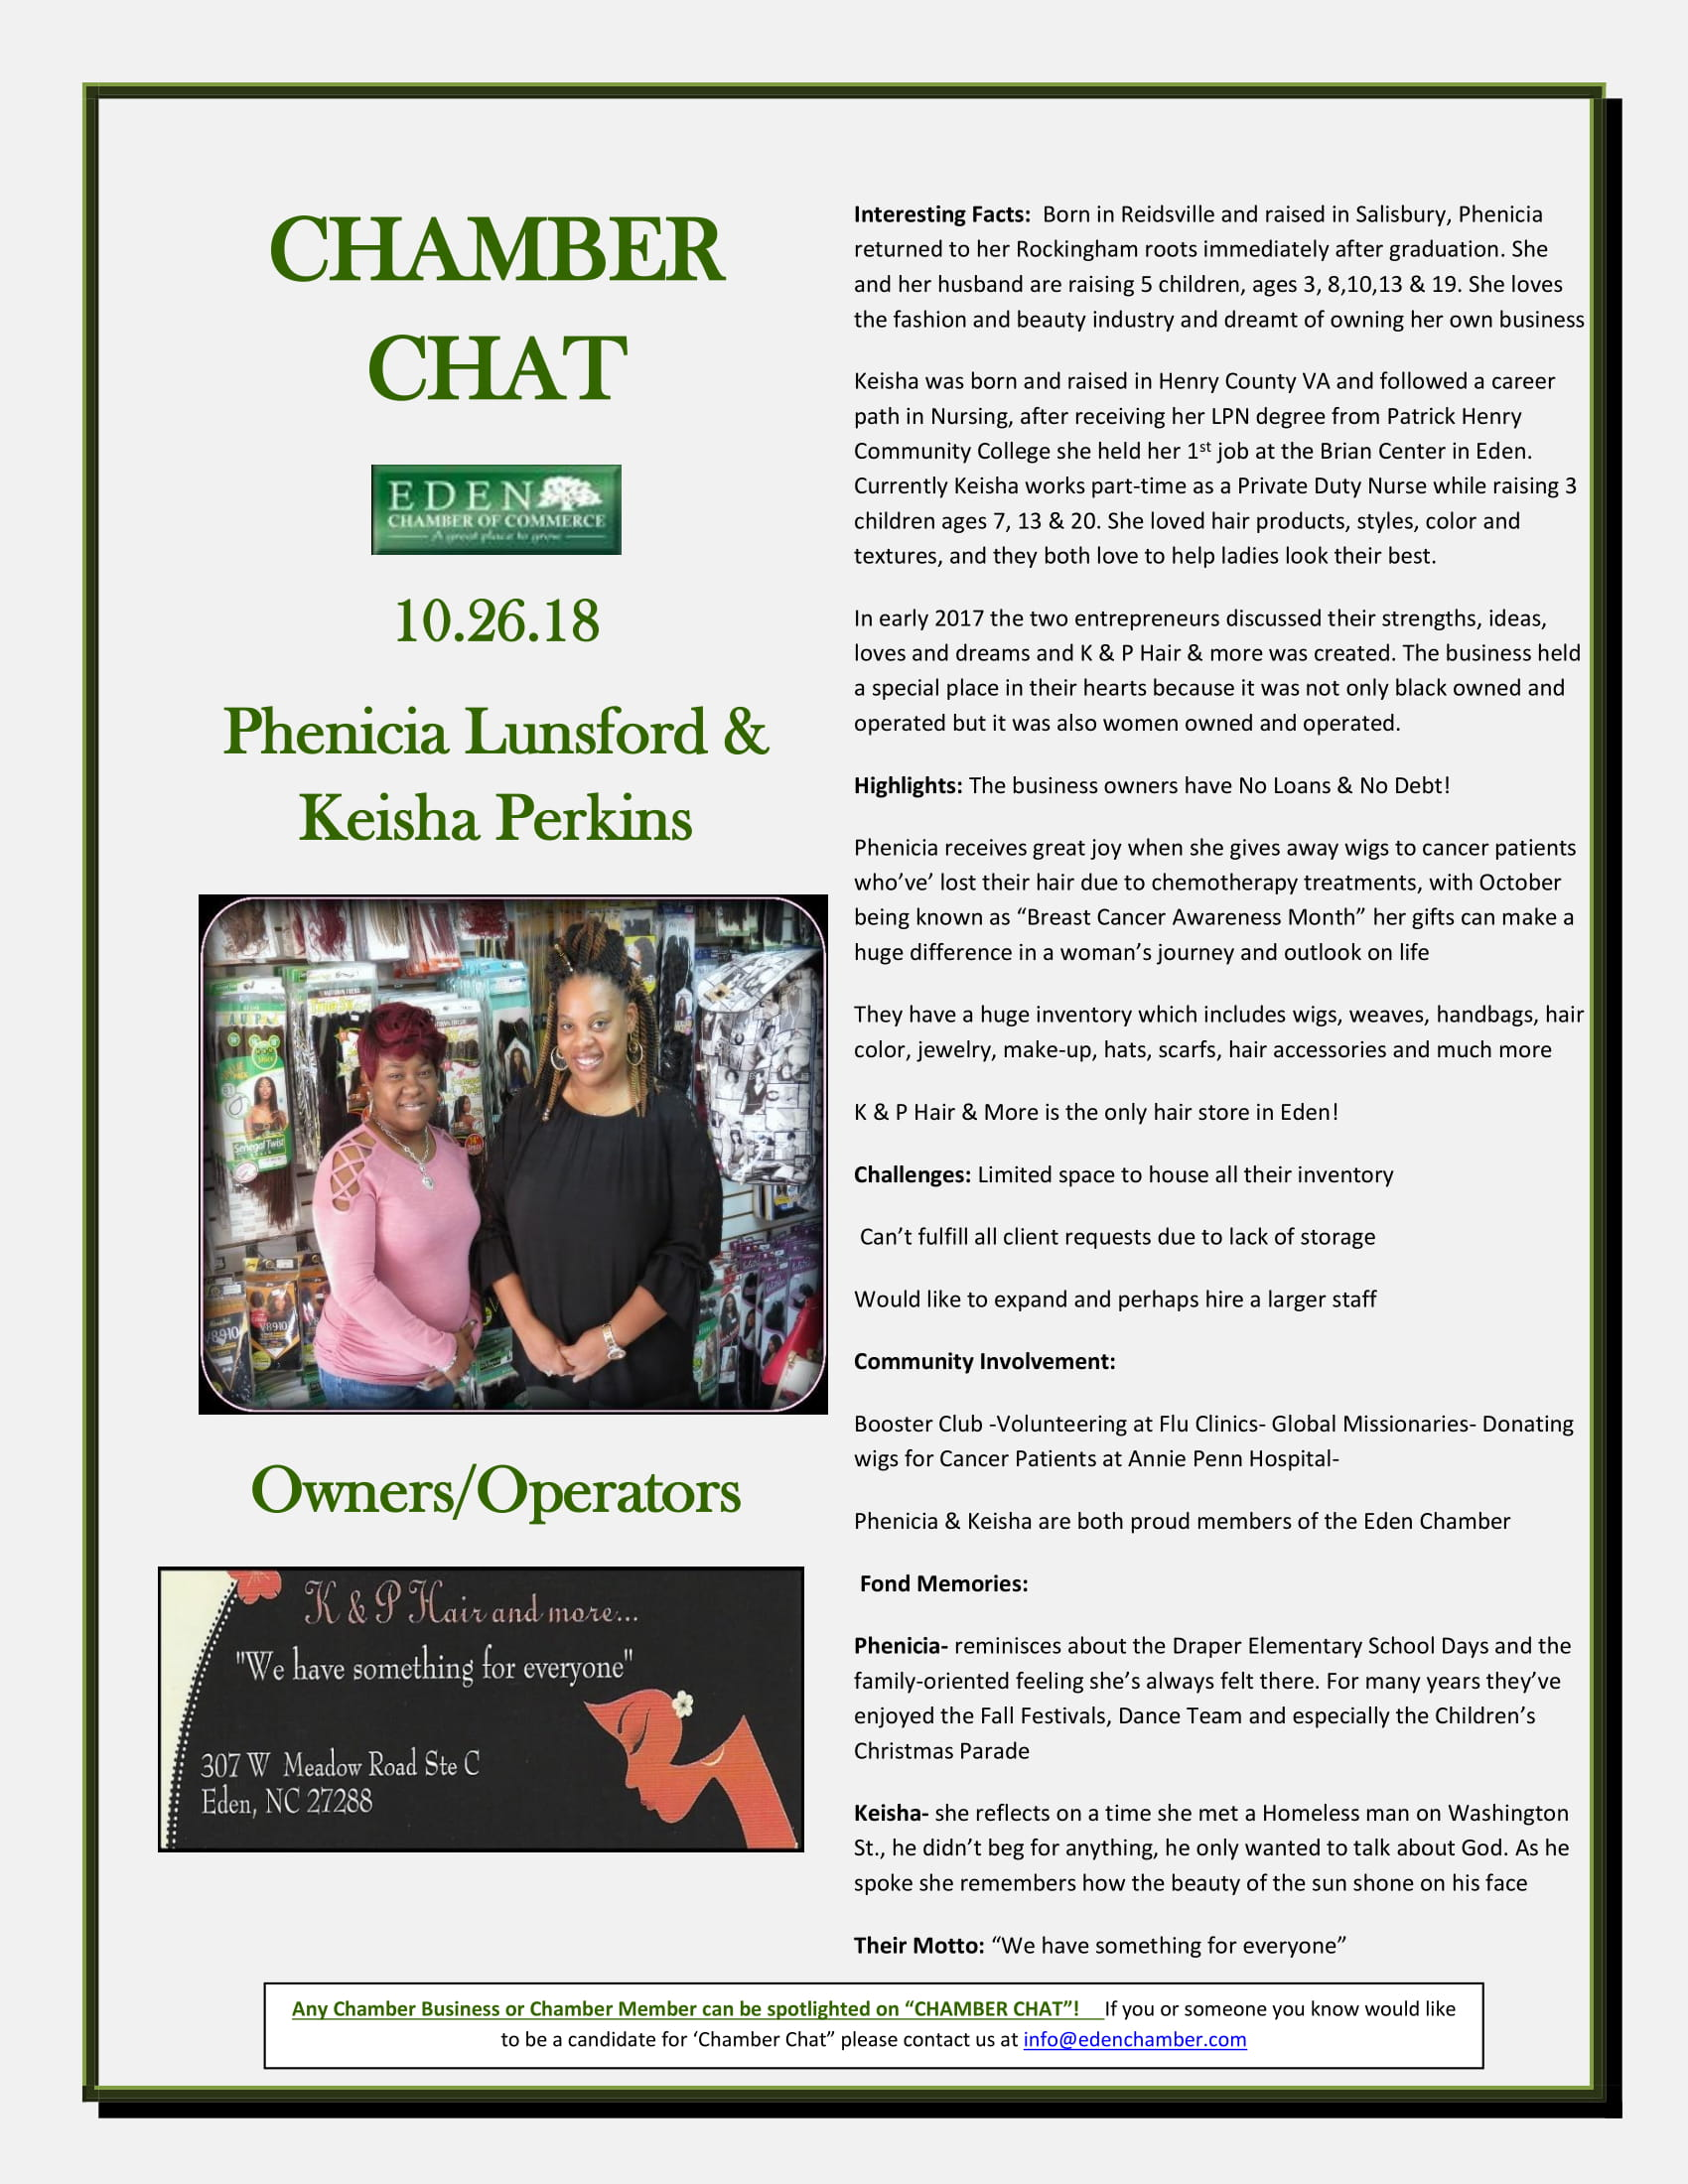 CHAMBER-CHAT--KandP-Hair-Phenecia-and-Keisha-10.25.18-1